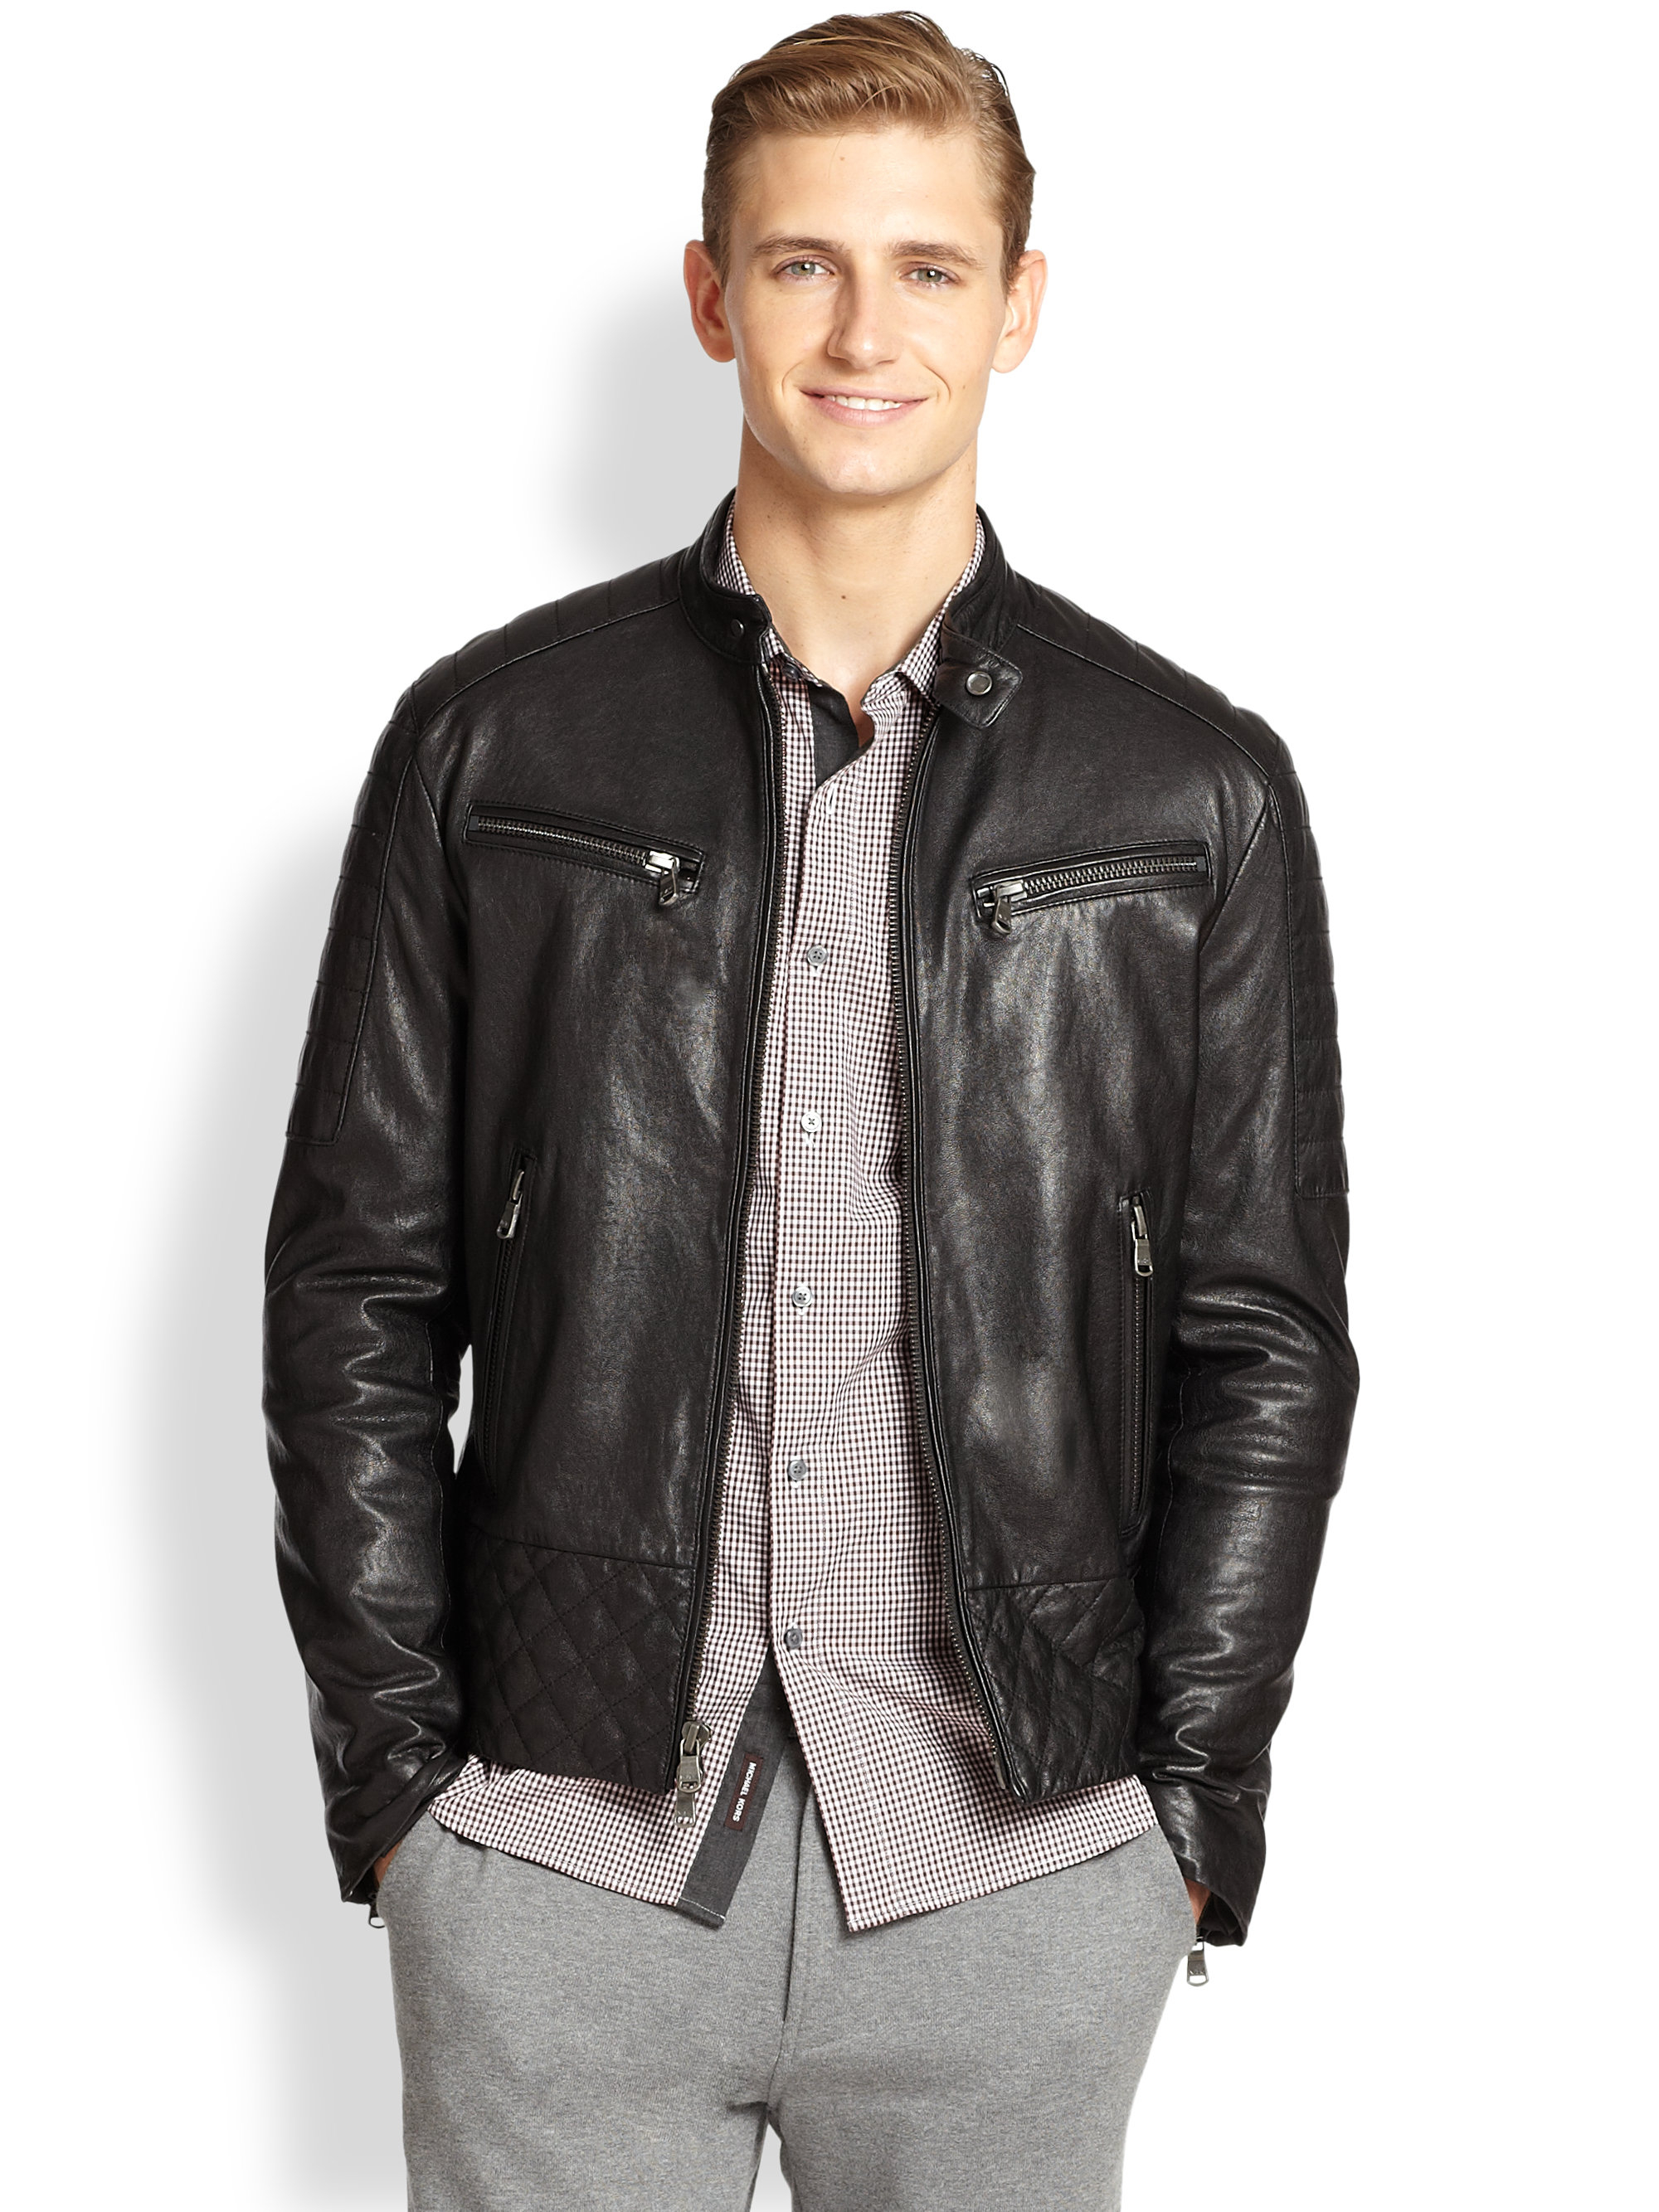 michael kors quilted leather jacket in black for men lyst. Black Bedroom Furniture Sets. Home Design Ideas